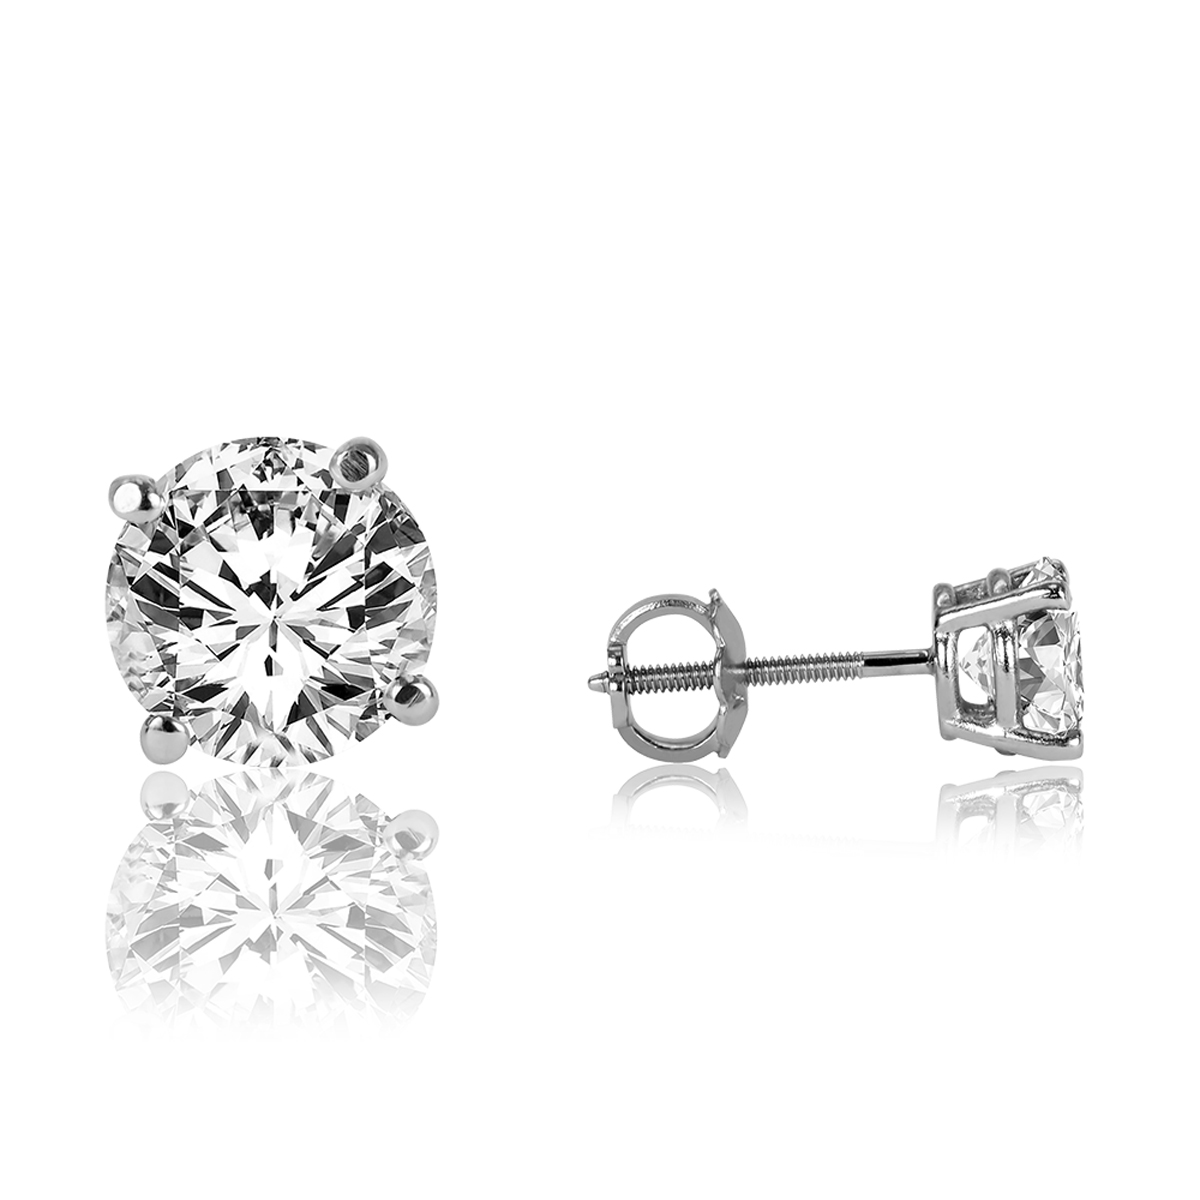 3 Carat Tw Round Cut Solitaire Diamond Stud Earrings 14k White Gold